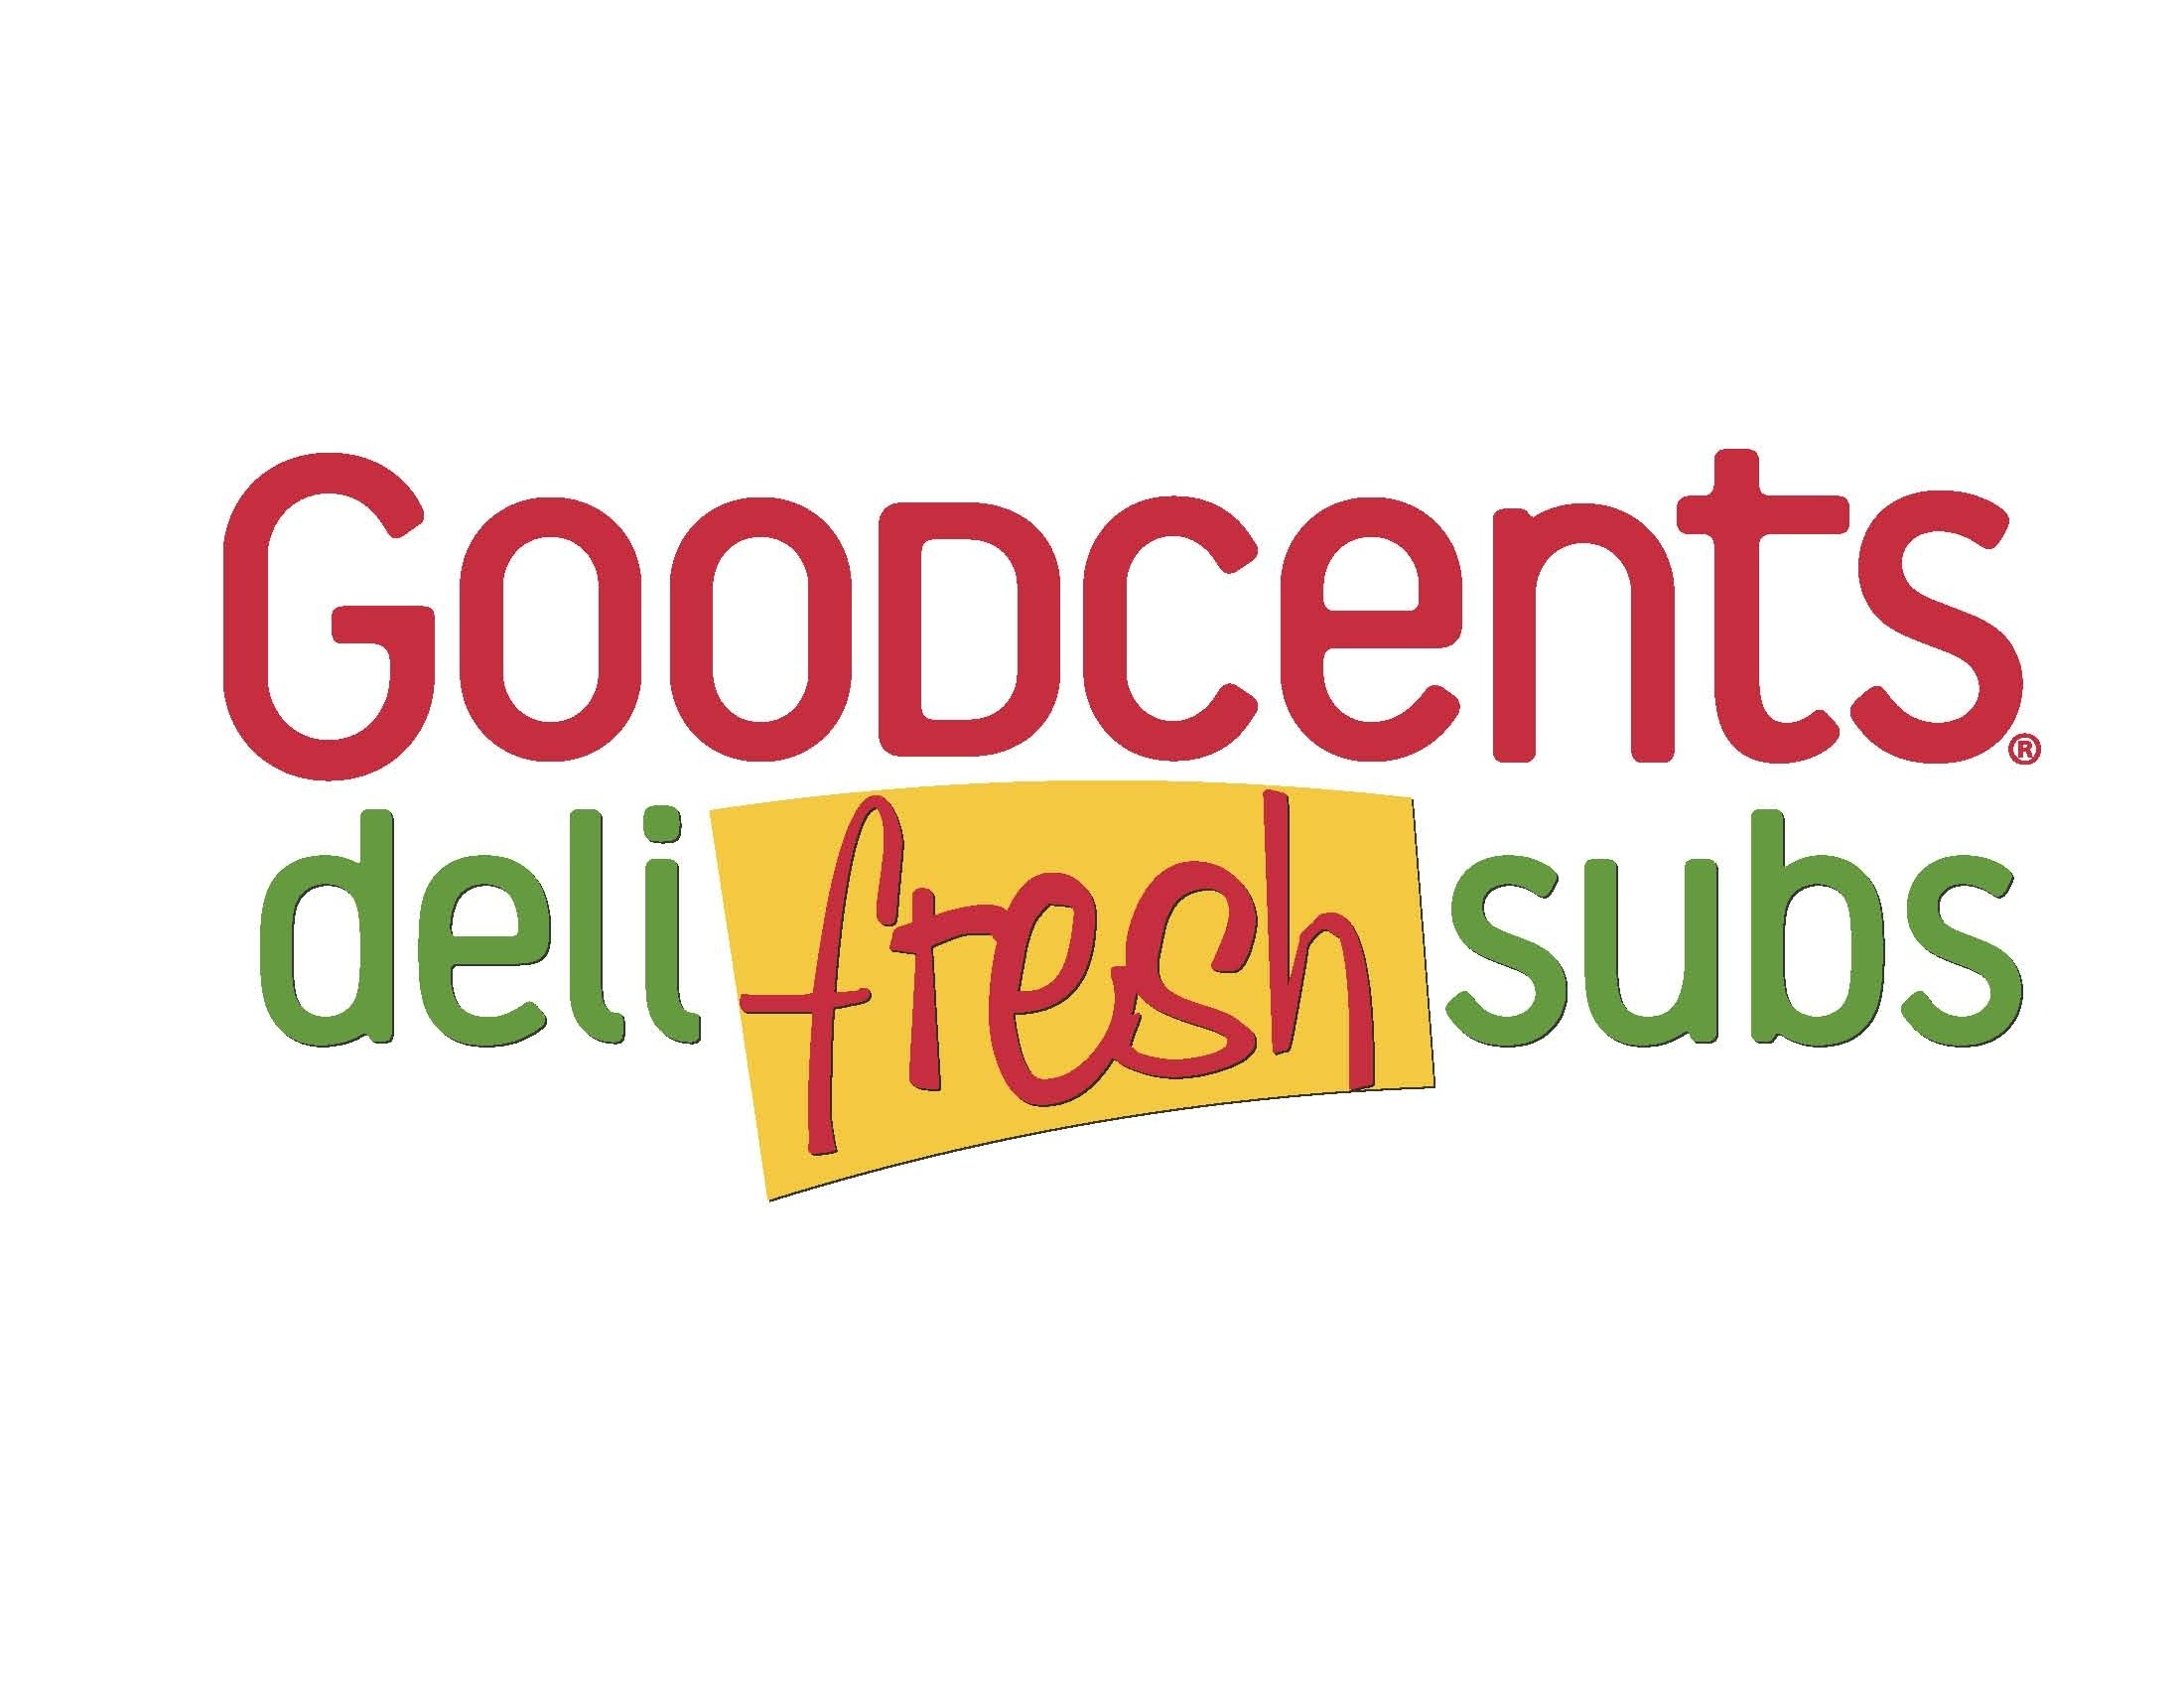 Introducing Goodcents Deli Fresh Subs